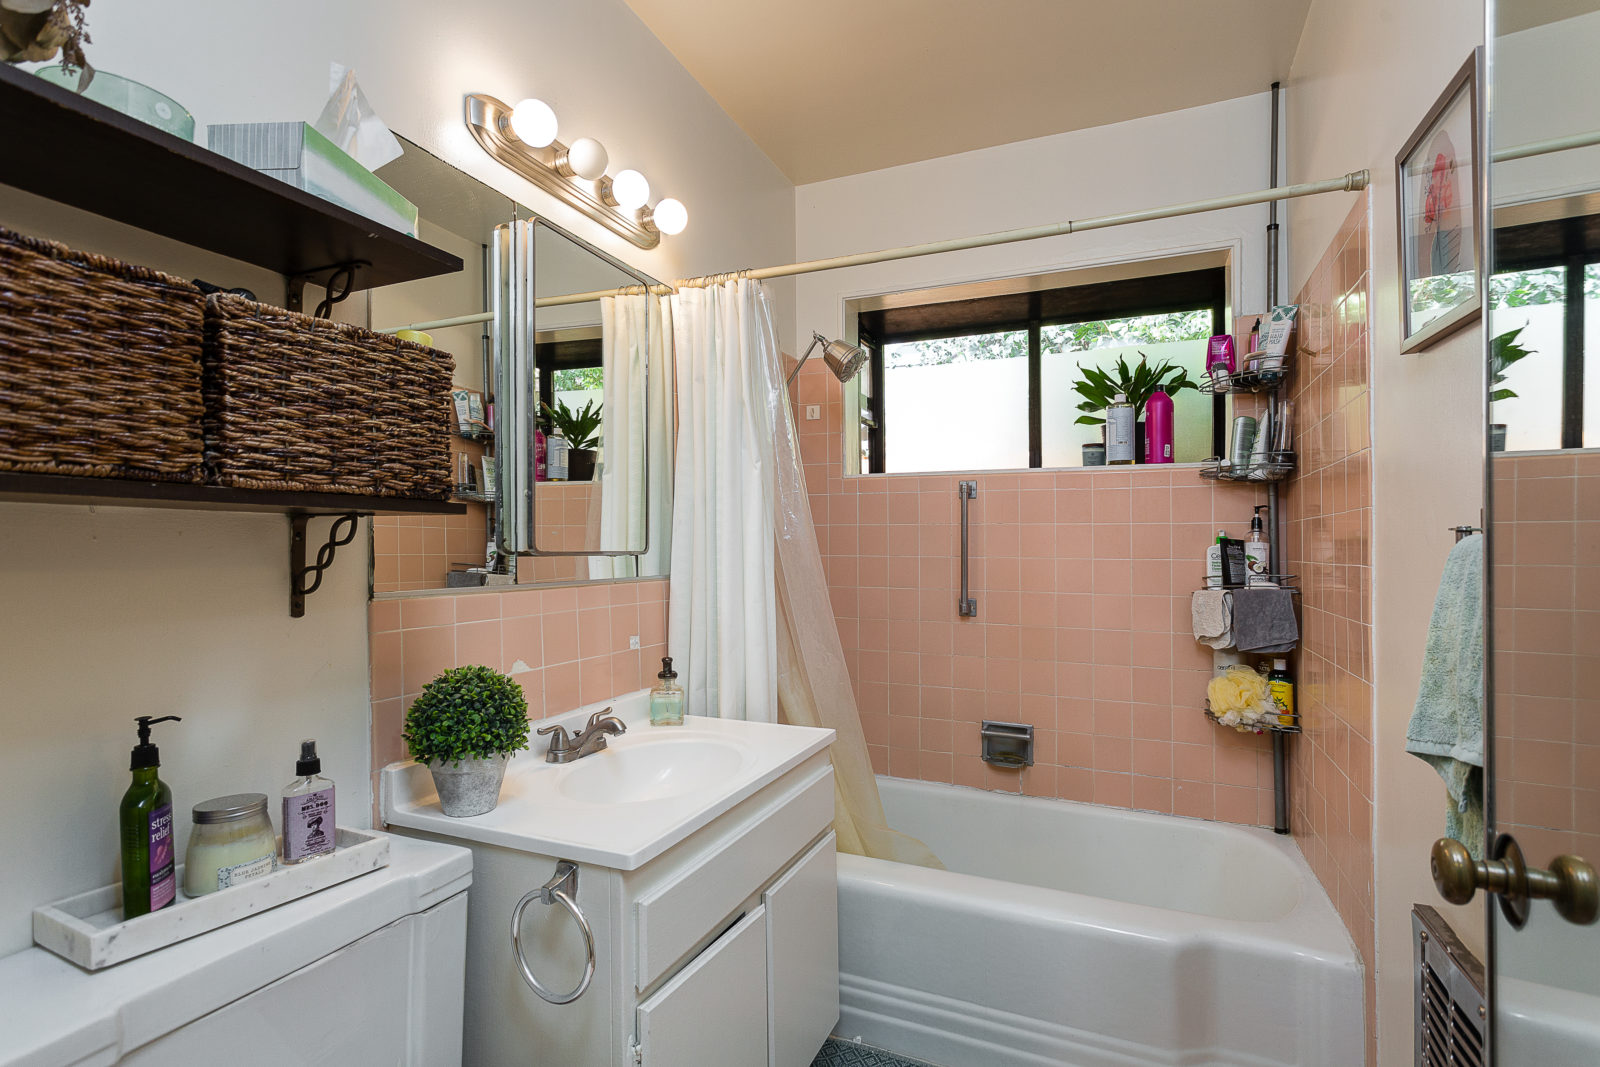 Bathroom of 6 unit apartment complex for sale at 315 Pleasant St, Pasadena, CA 91101